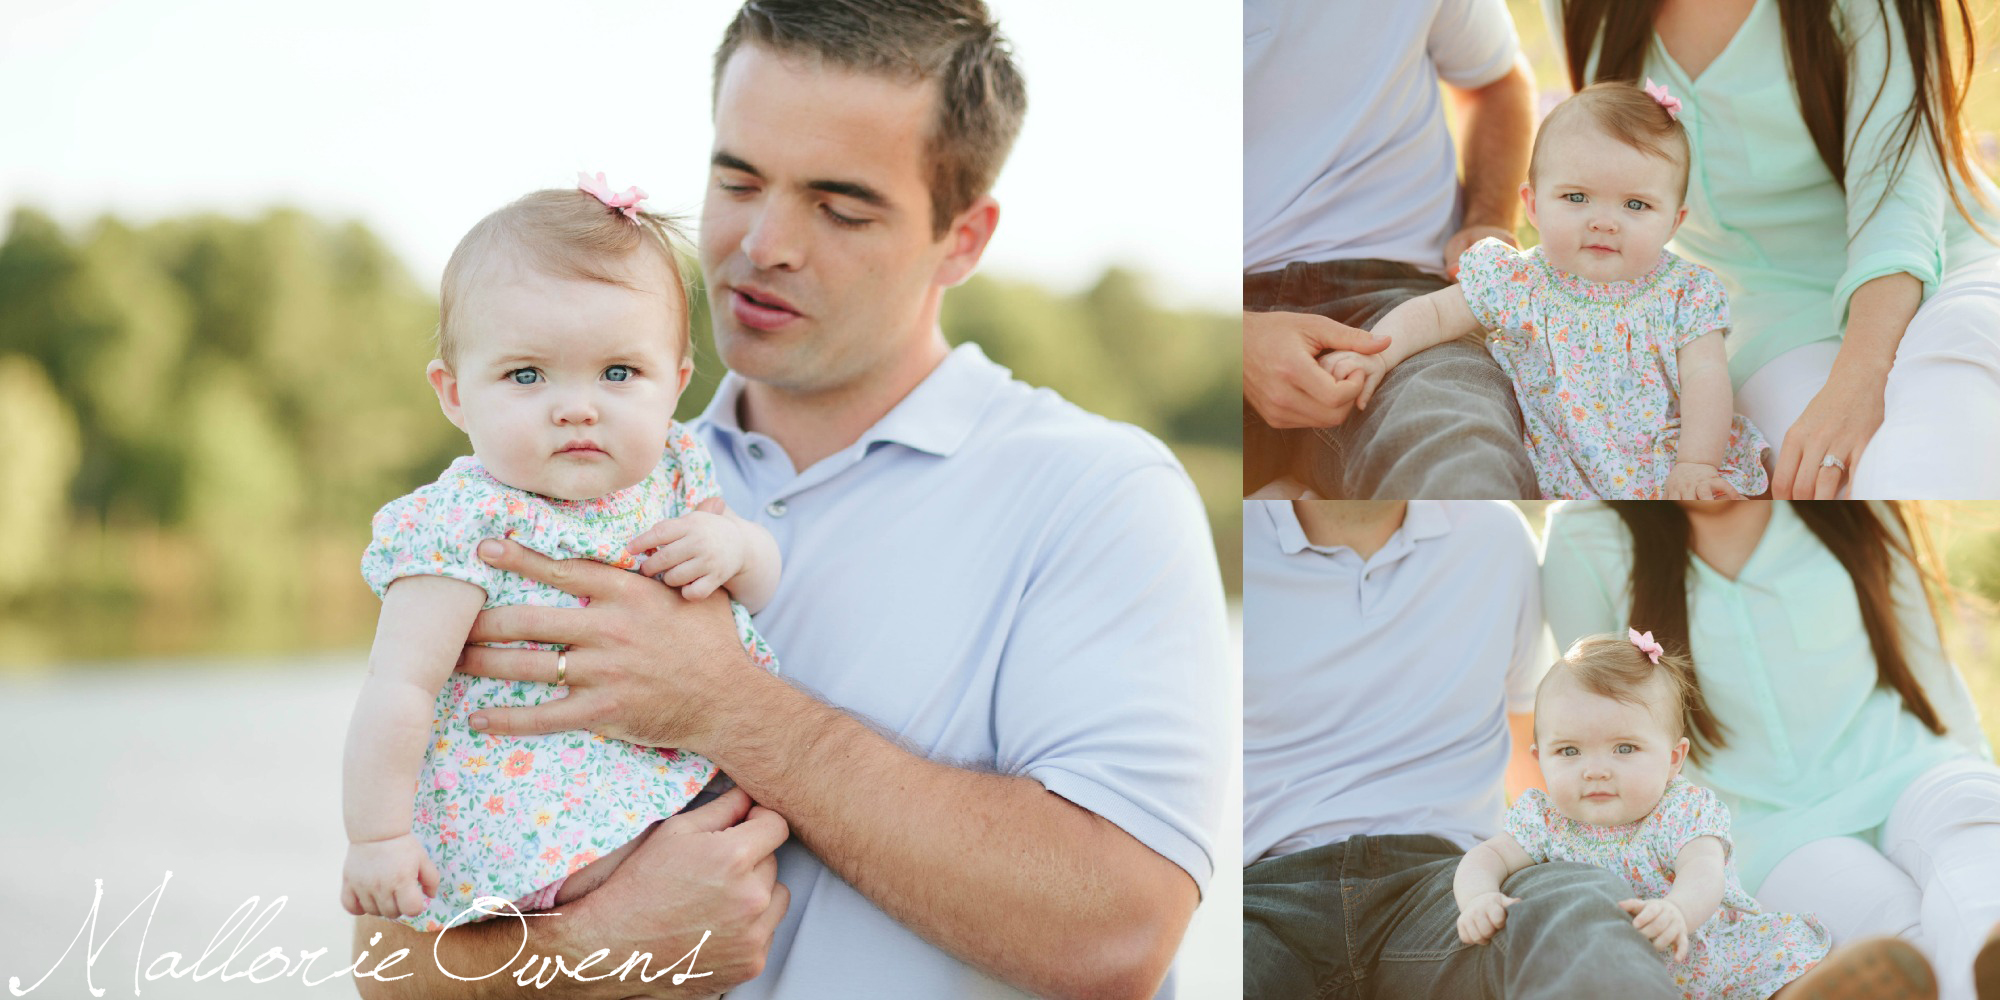 Daddy's Girl | MALLORIE OWENS